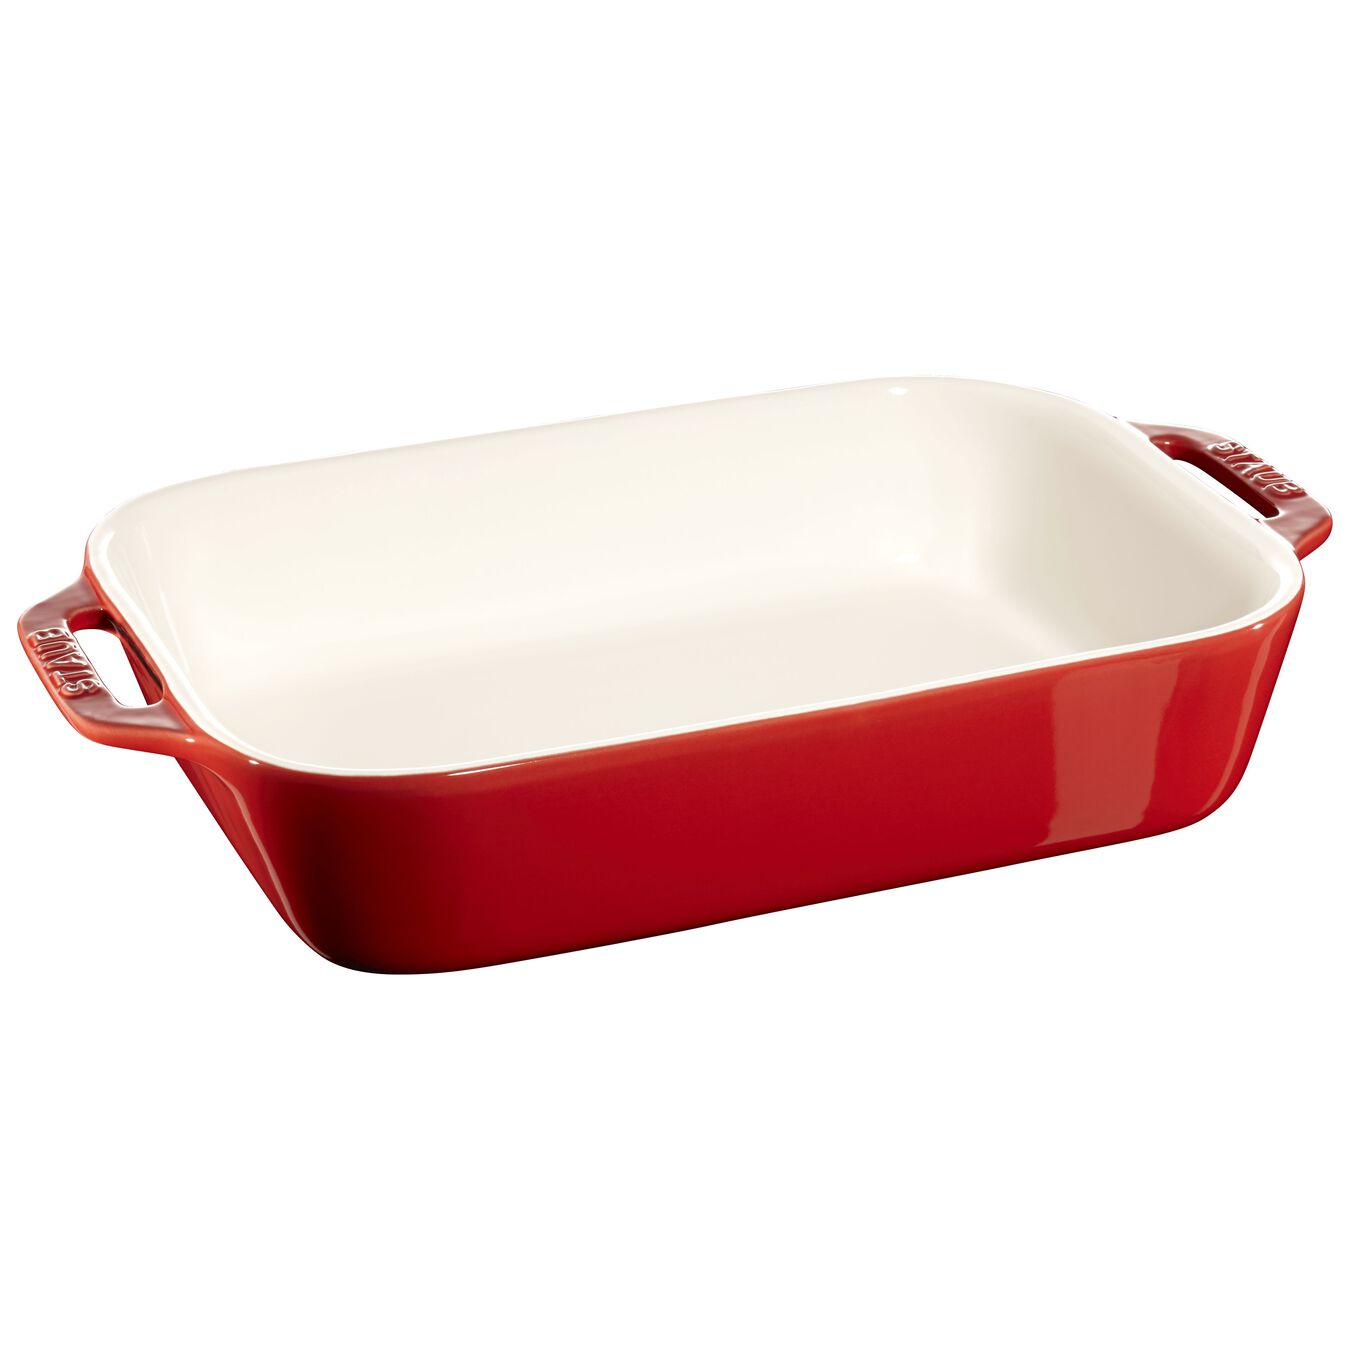 Ceramic rectangular Oven dish, Cherry,,large 1